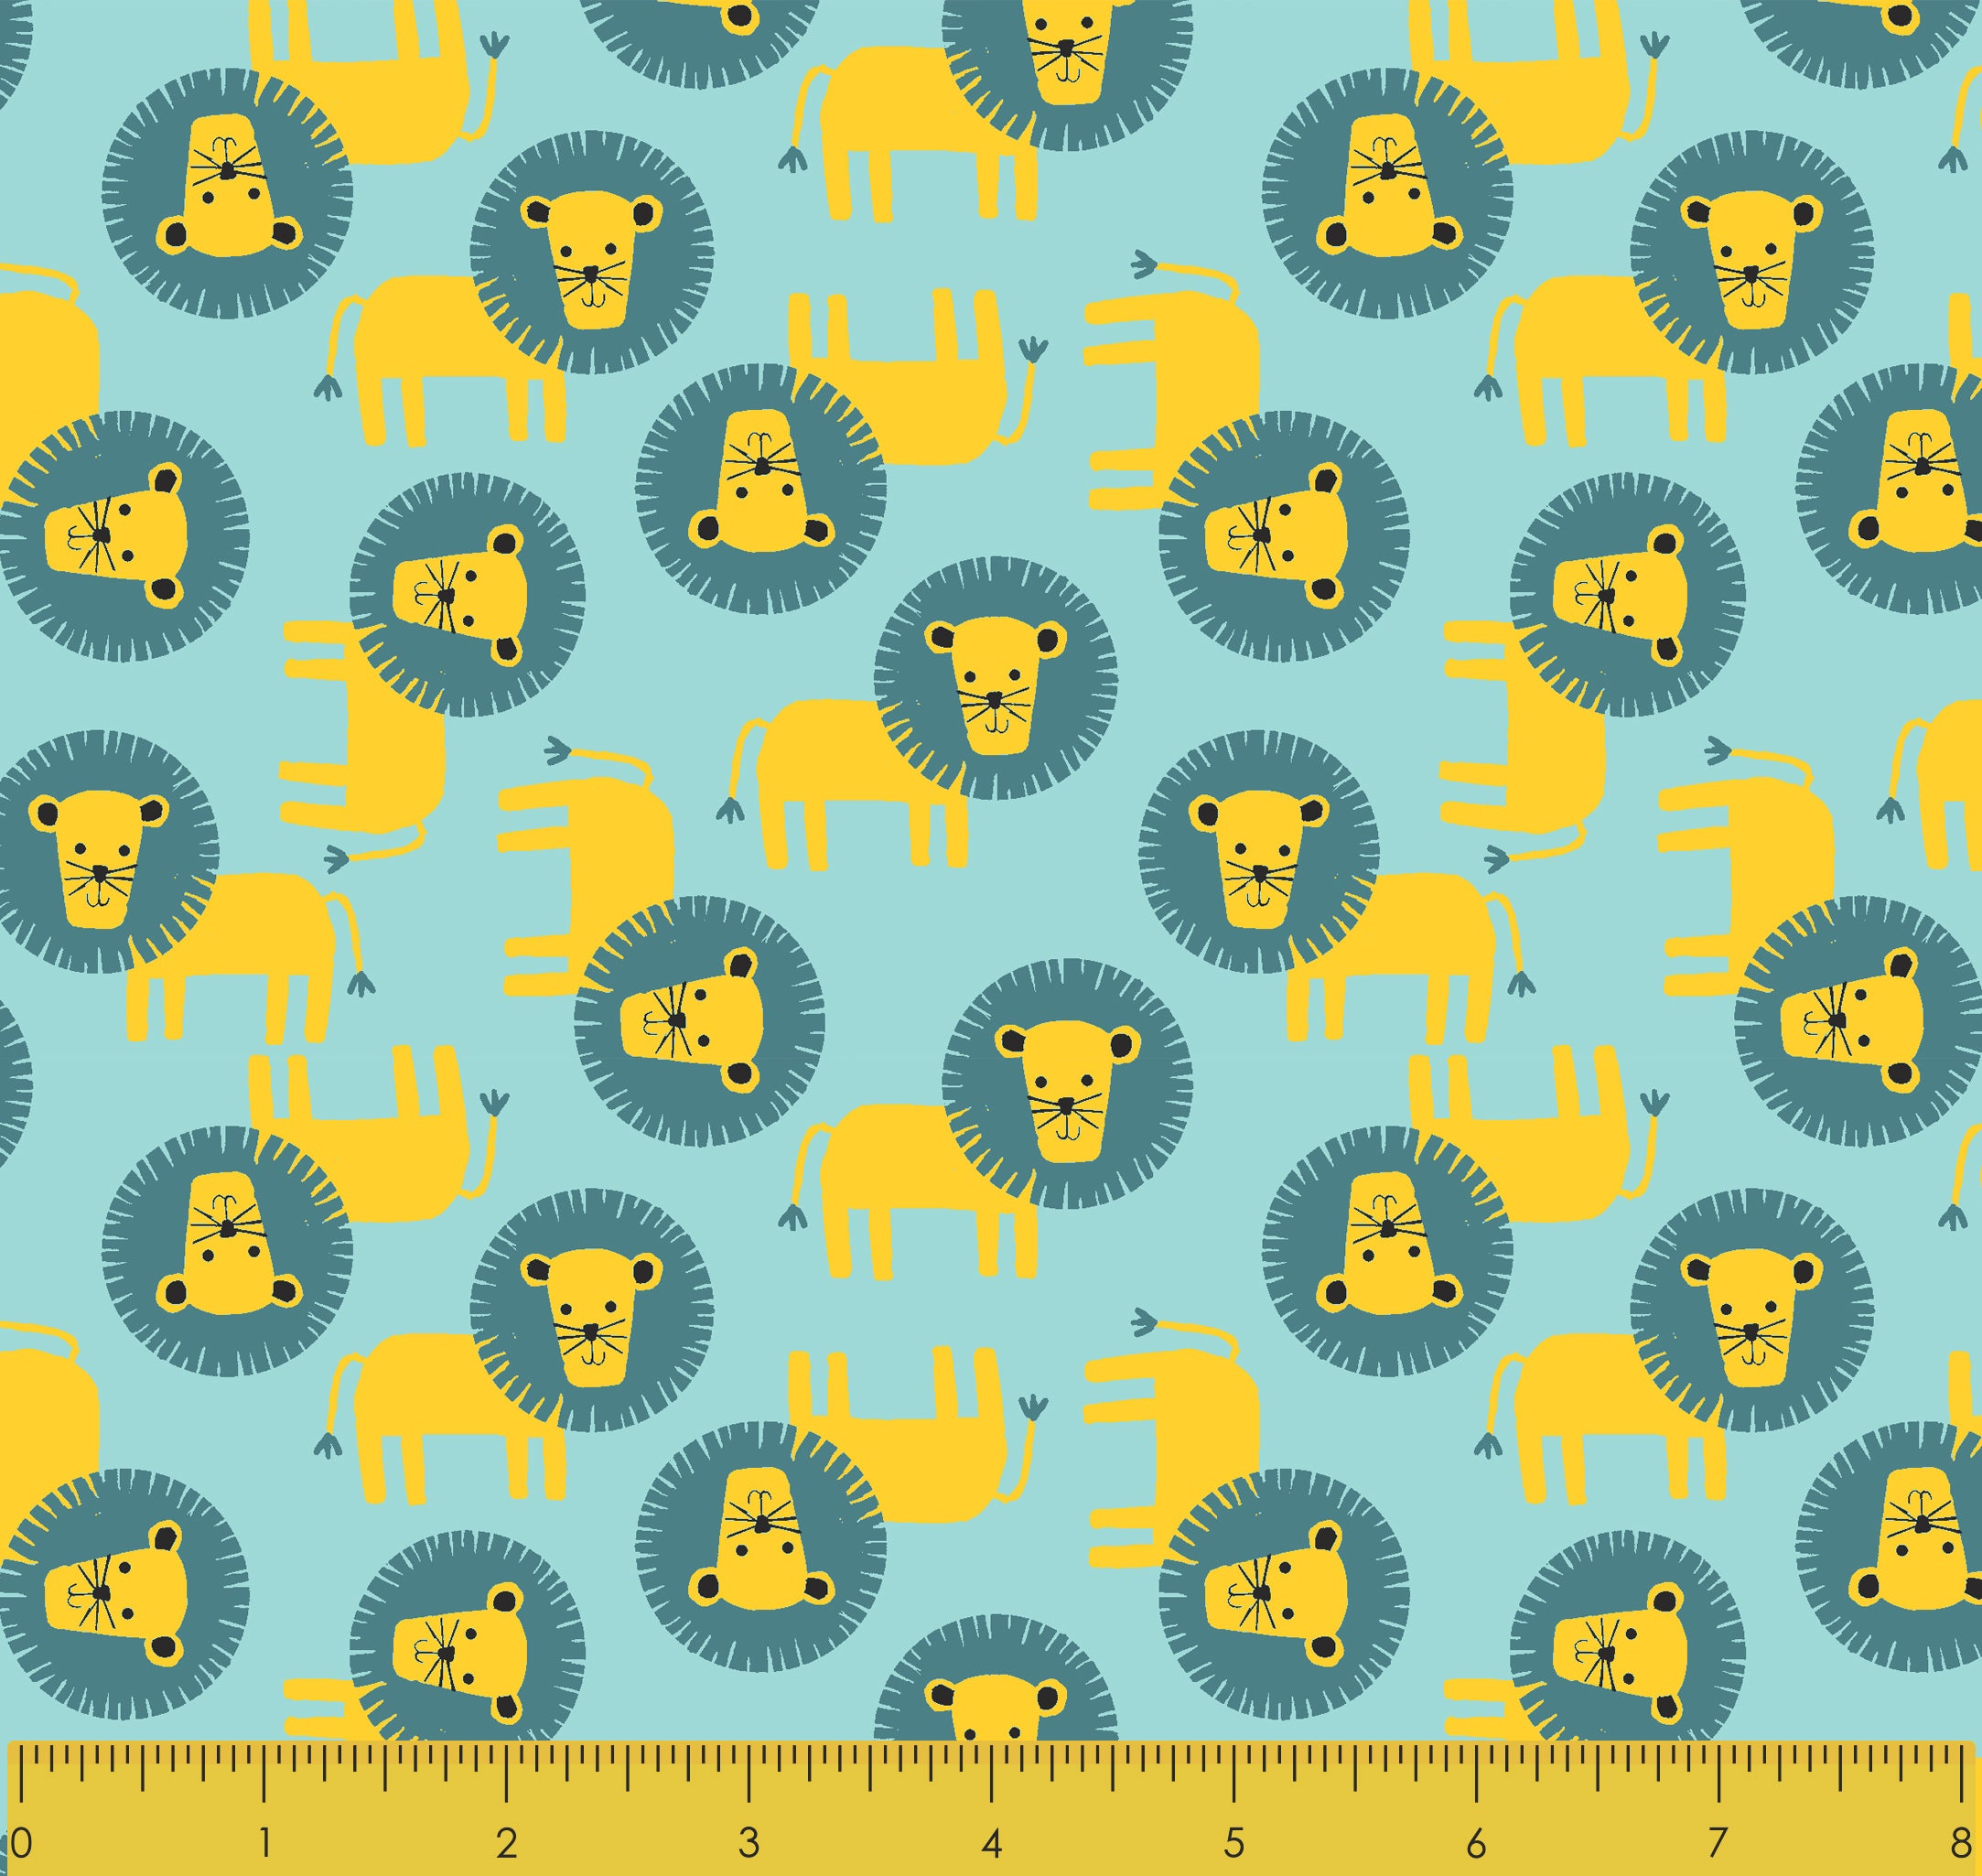 Blank Quilting /'Lion Heads Light Blue/' Flannel By The Yard; Safari Shuffle 2-Ply Flannel Collection #9164F-70